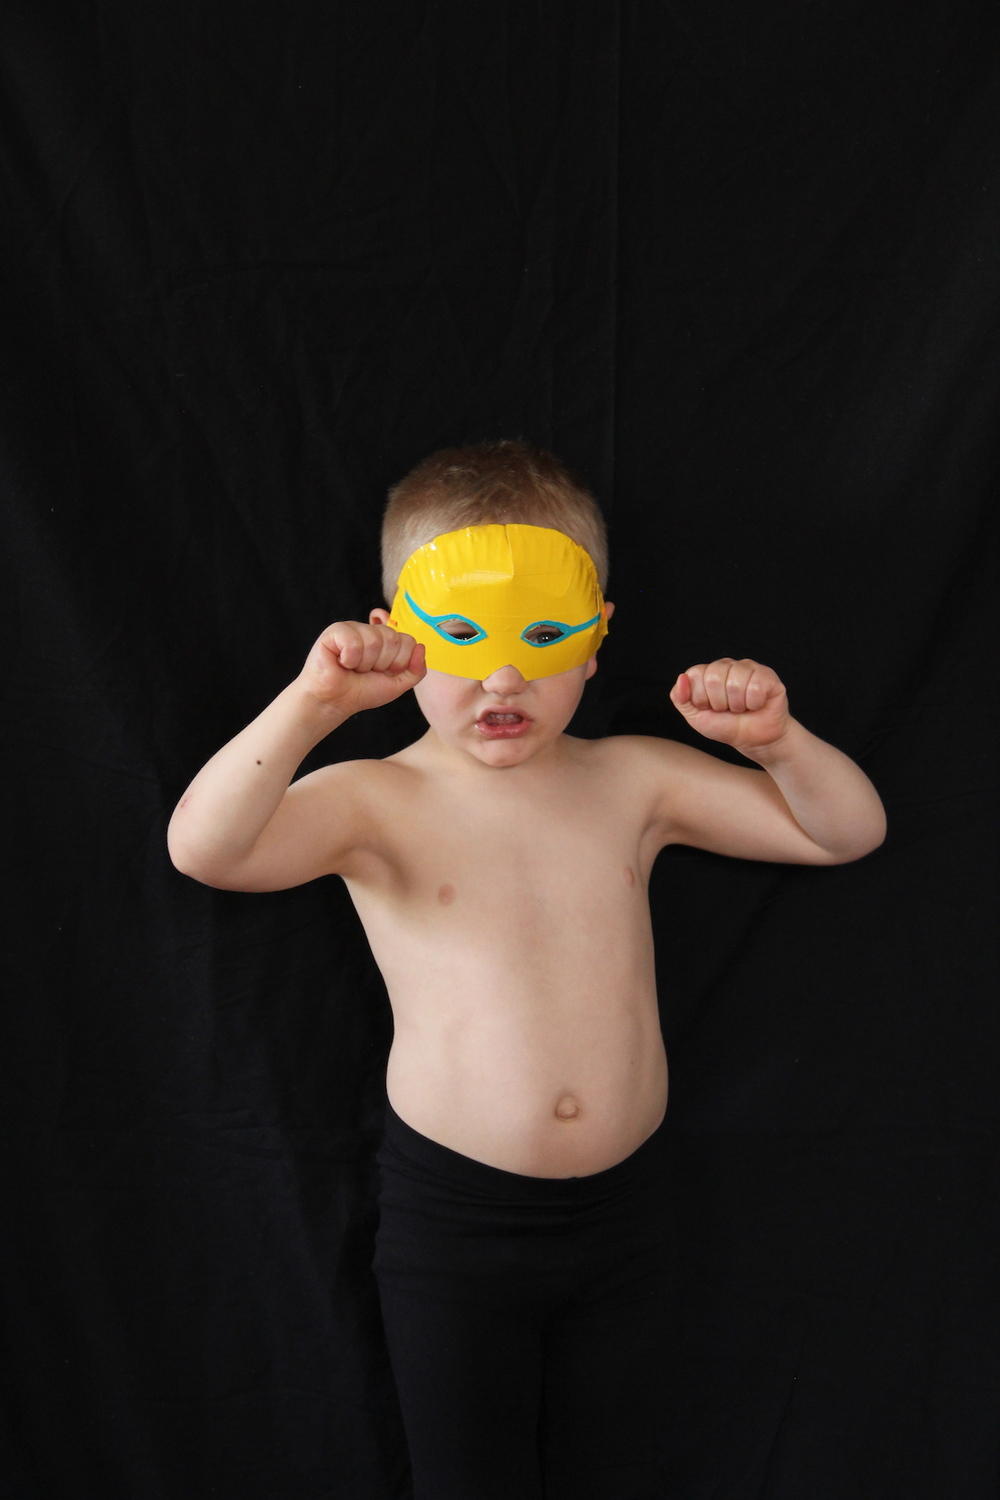 Make your own luchador masks with paper plates and duct tape!